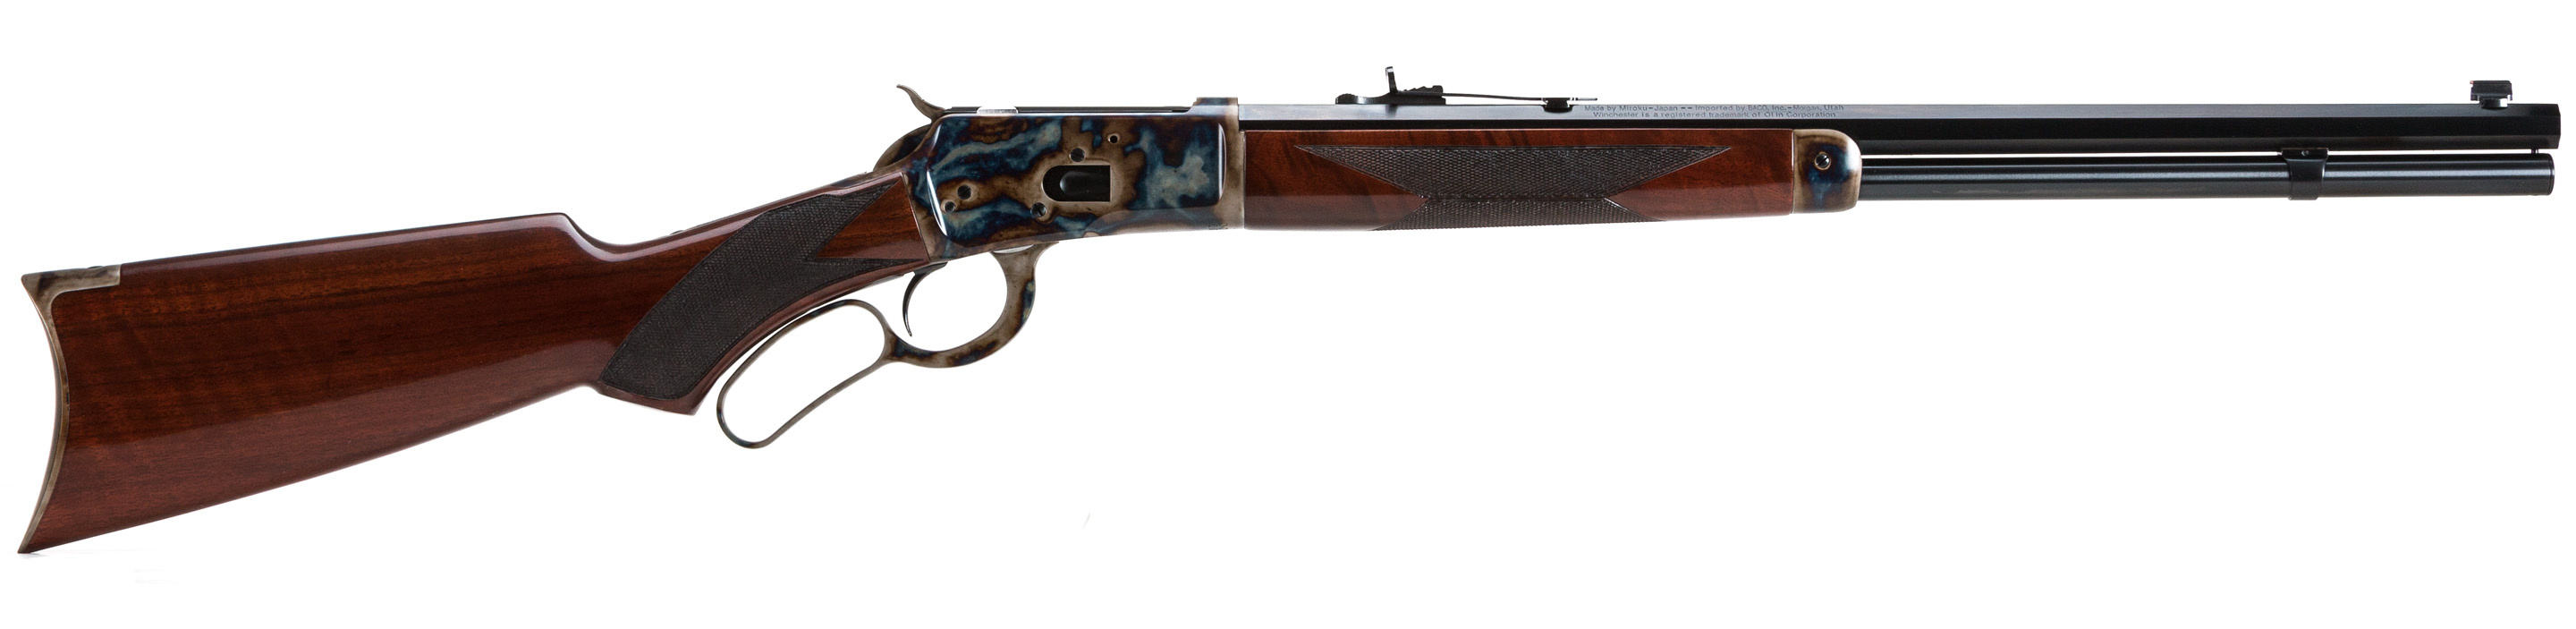 Turnbull Winchester 1892 in .44 Remington with pistol grip